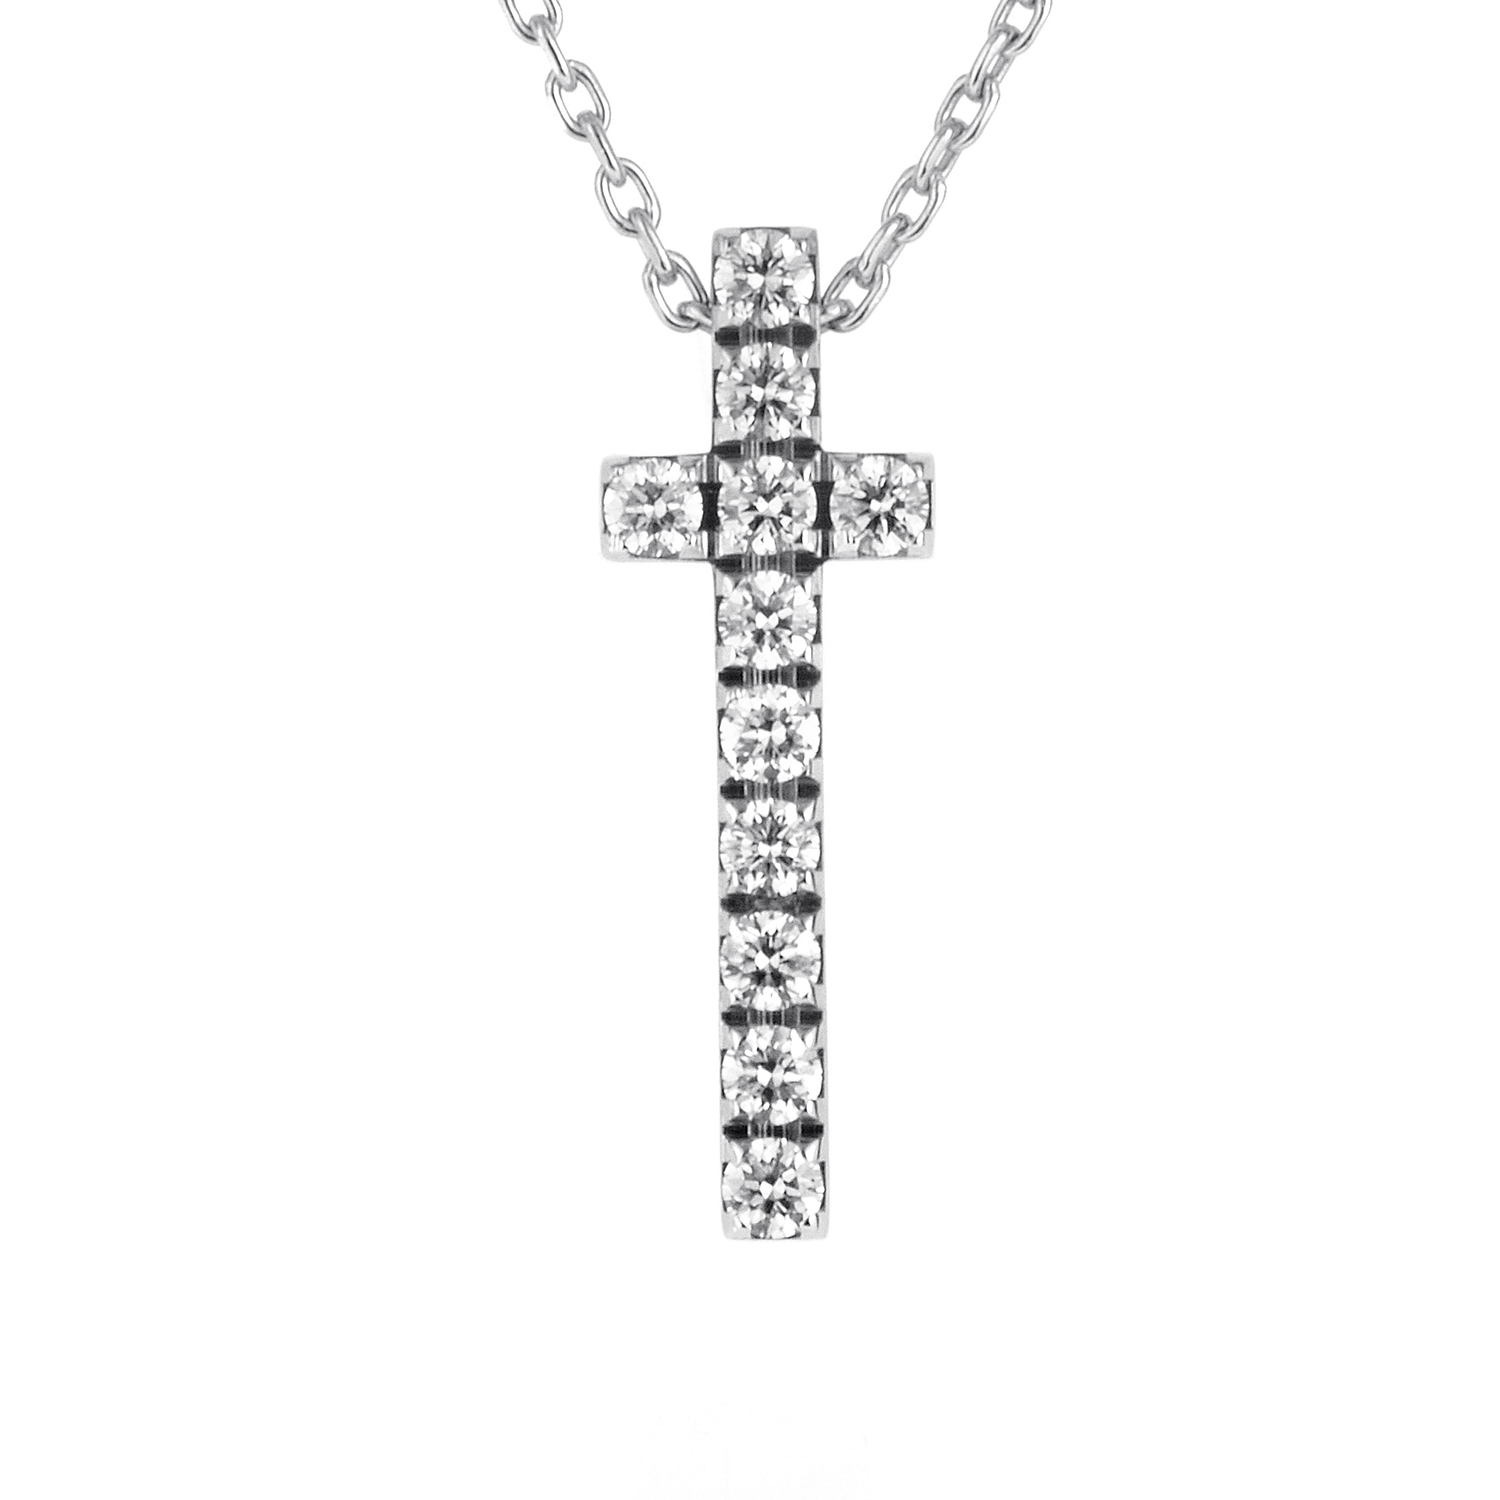 Piaget 18K White Gold Diamond Cross Pendant Necklace